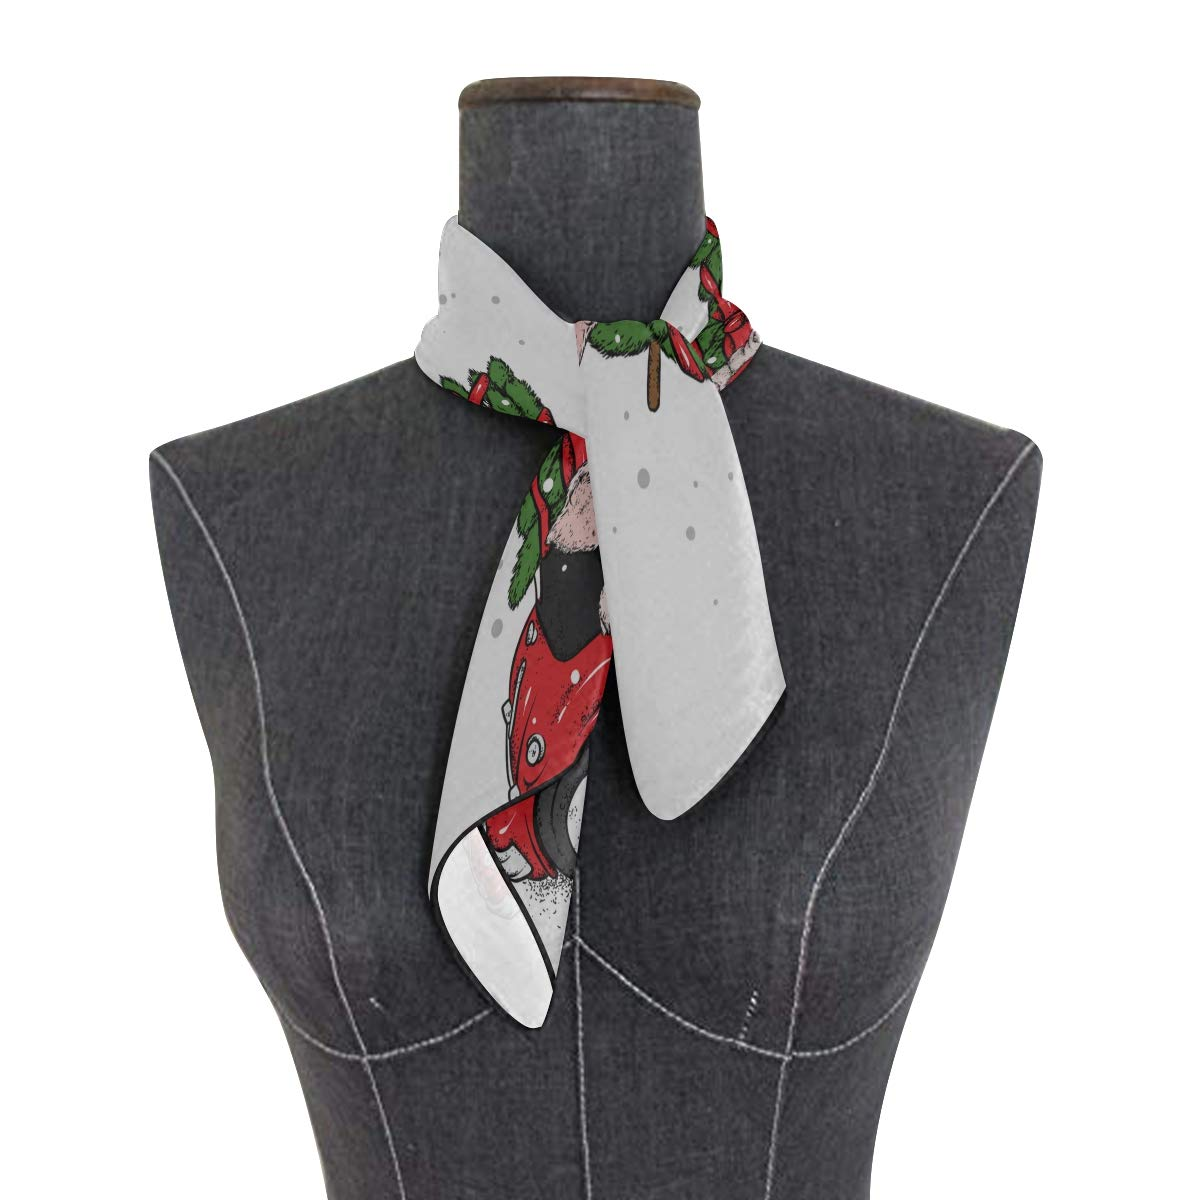 Soft Polyester Silk Unique Scarves For Women Fashion Print Red Christmas Animal Car Scarves For Hair Square Neckerchief Scarfes For Hair Multiple Ways Of Wearing Daily Decor